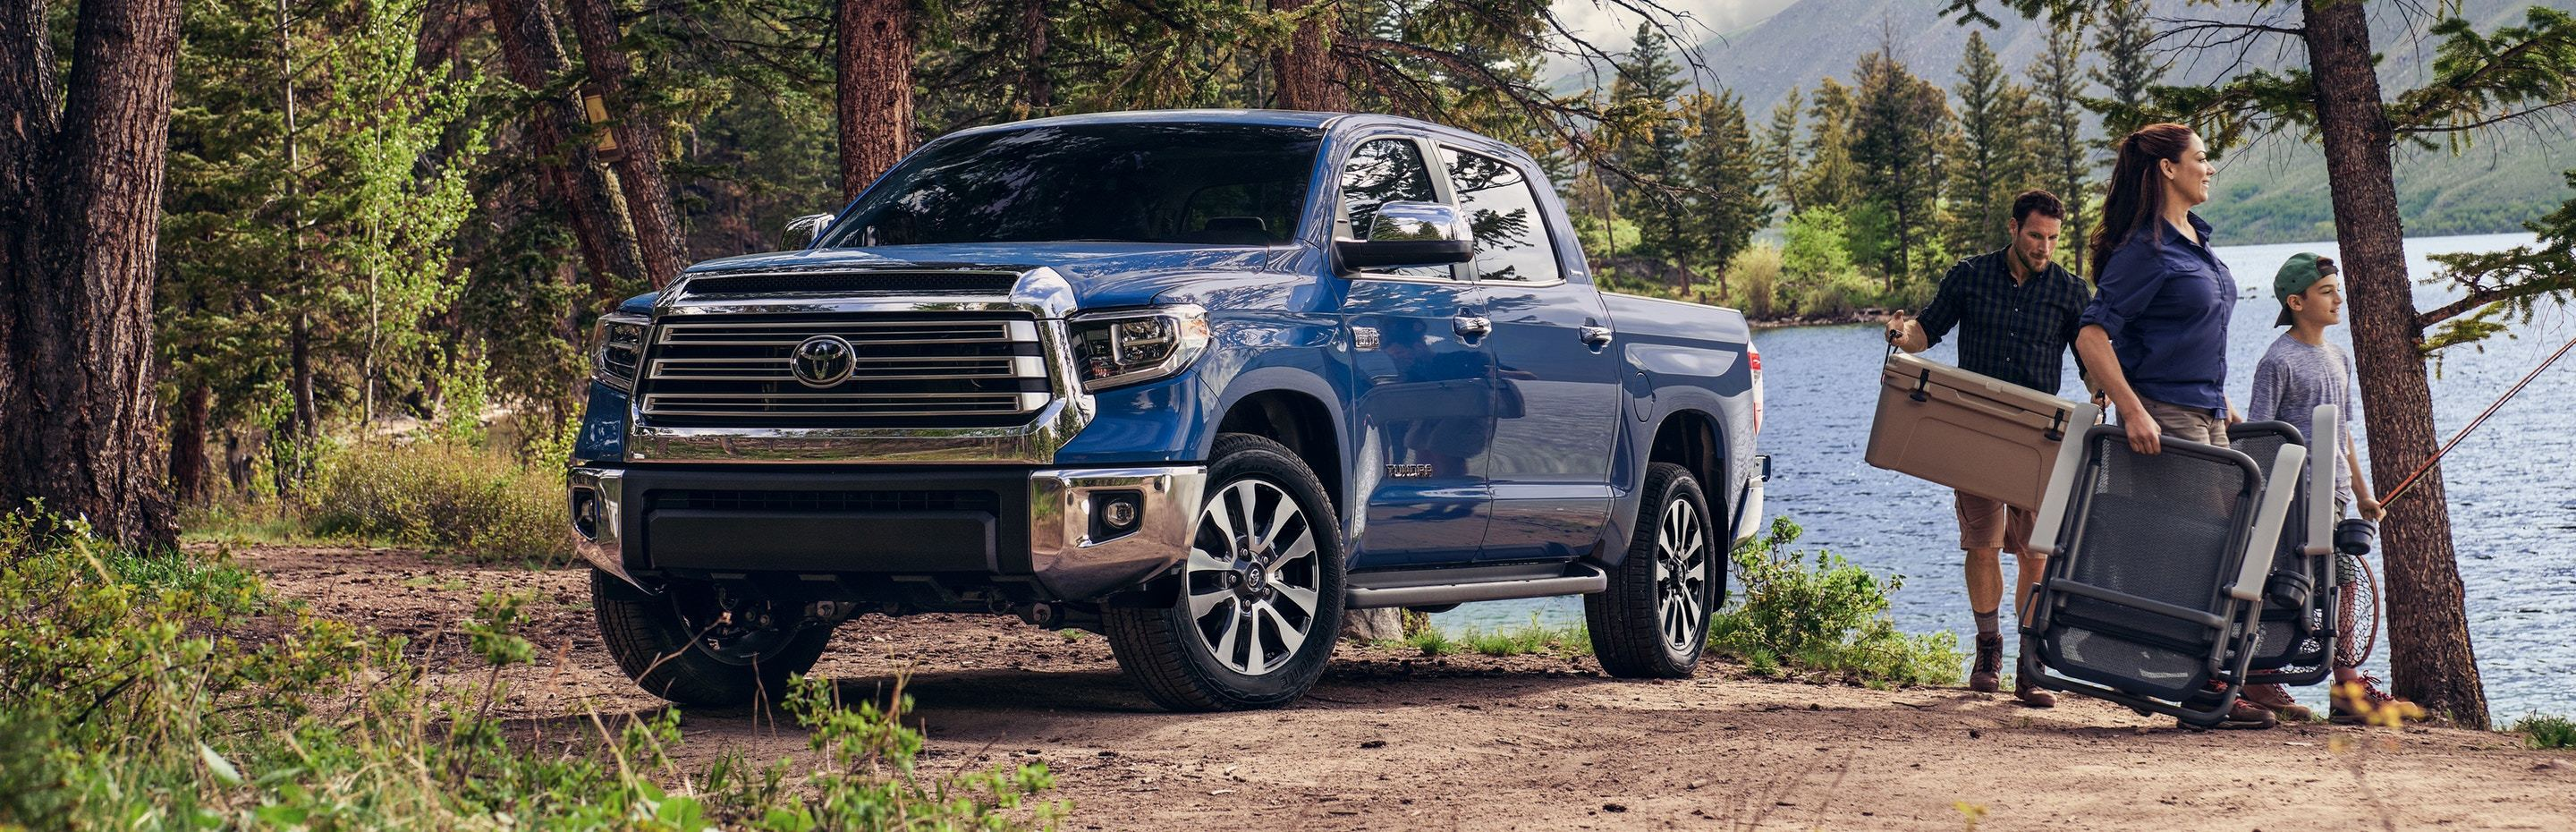 2020 Toyota Tundra for Sale near Pittsburgh, PA